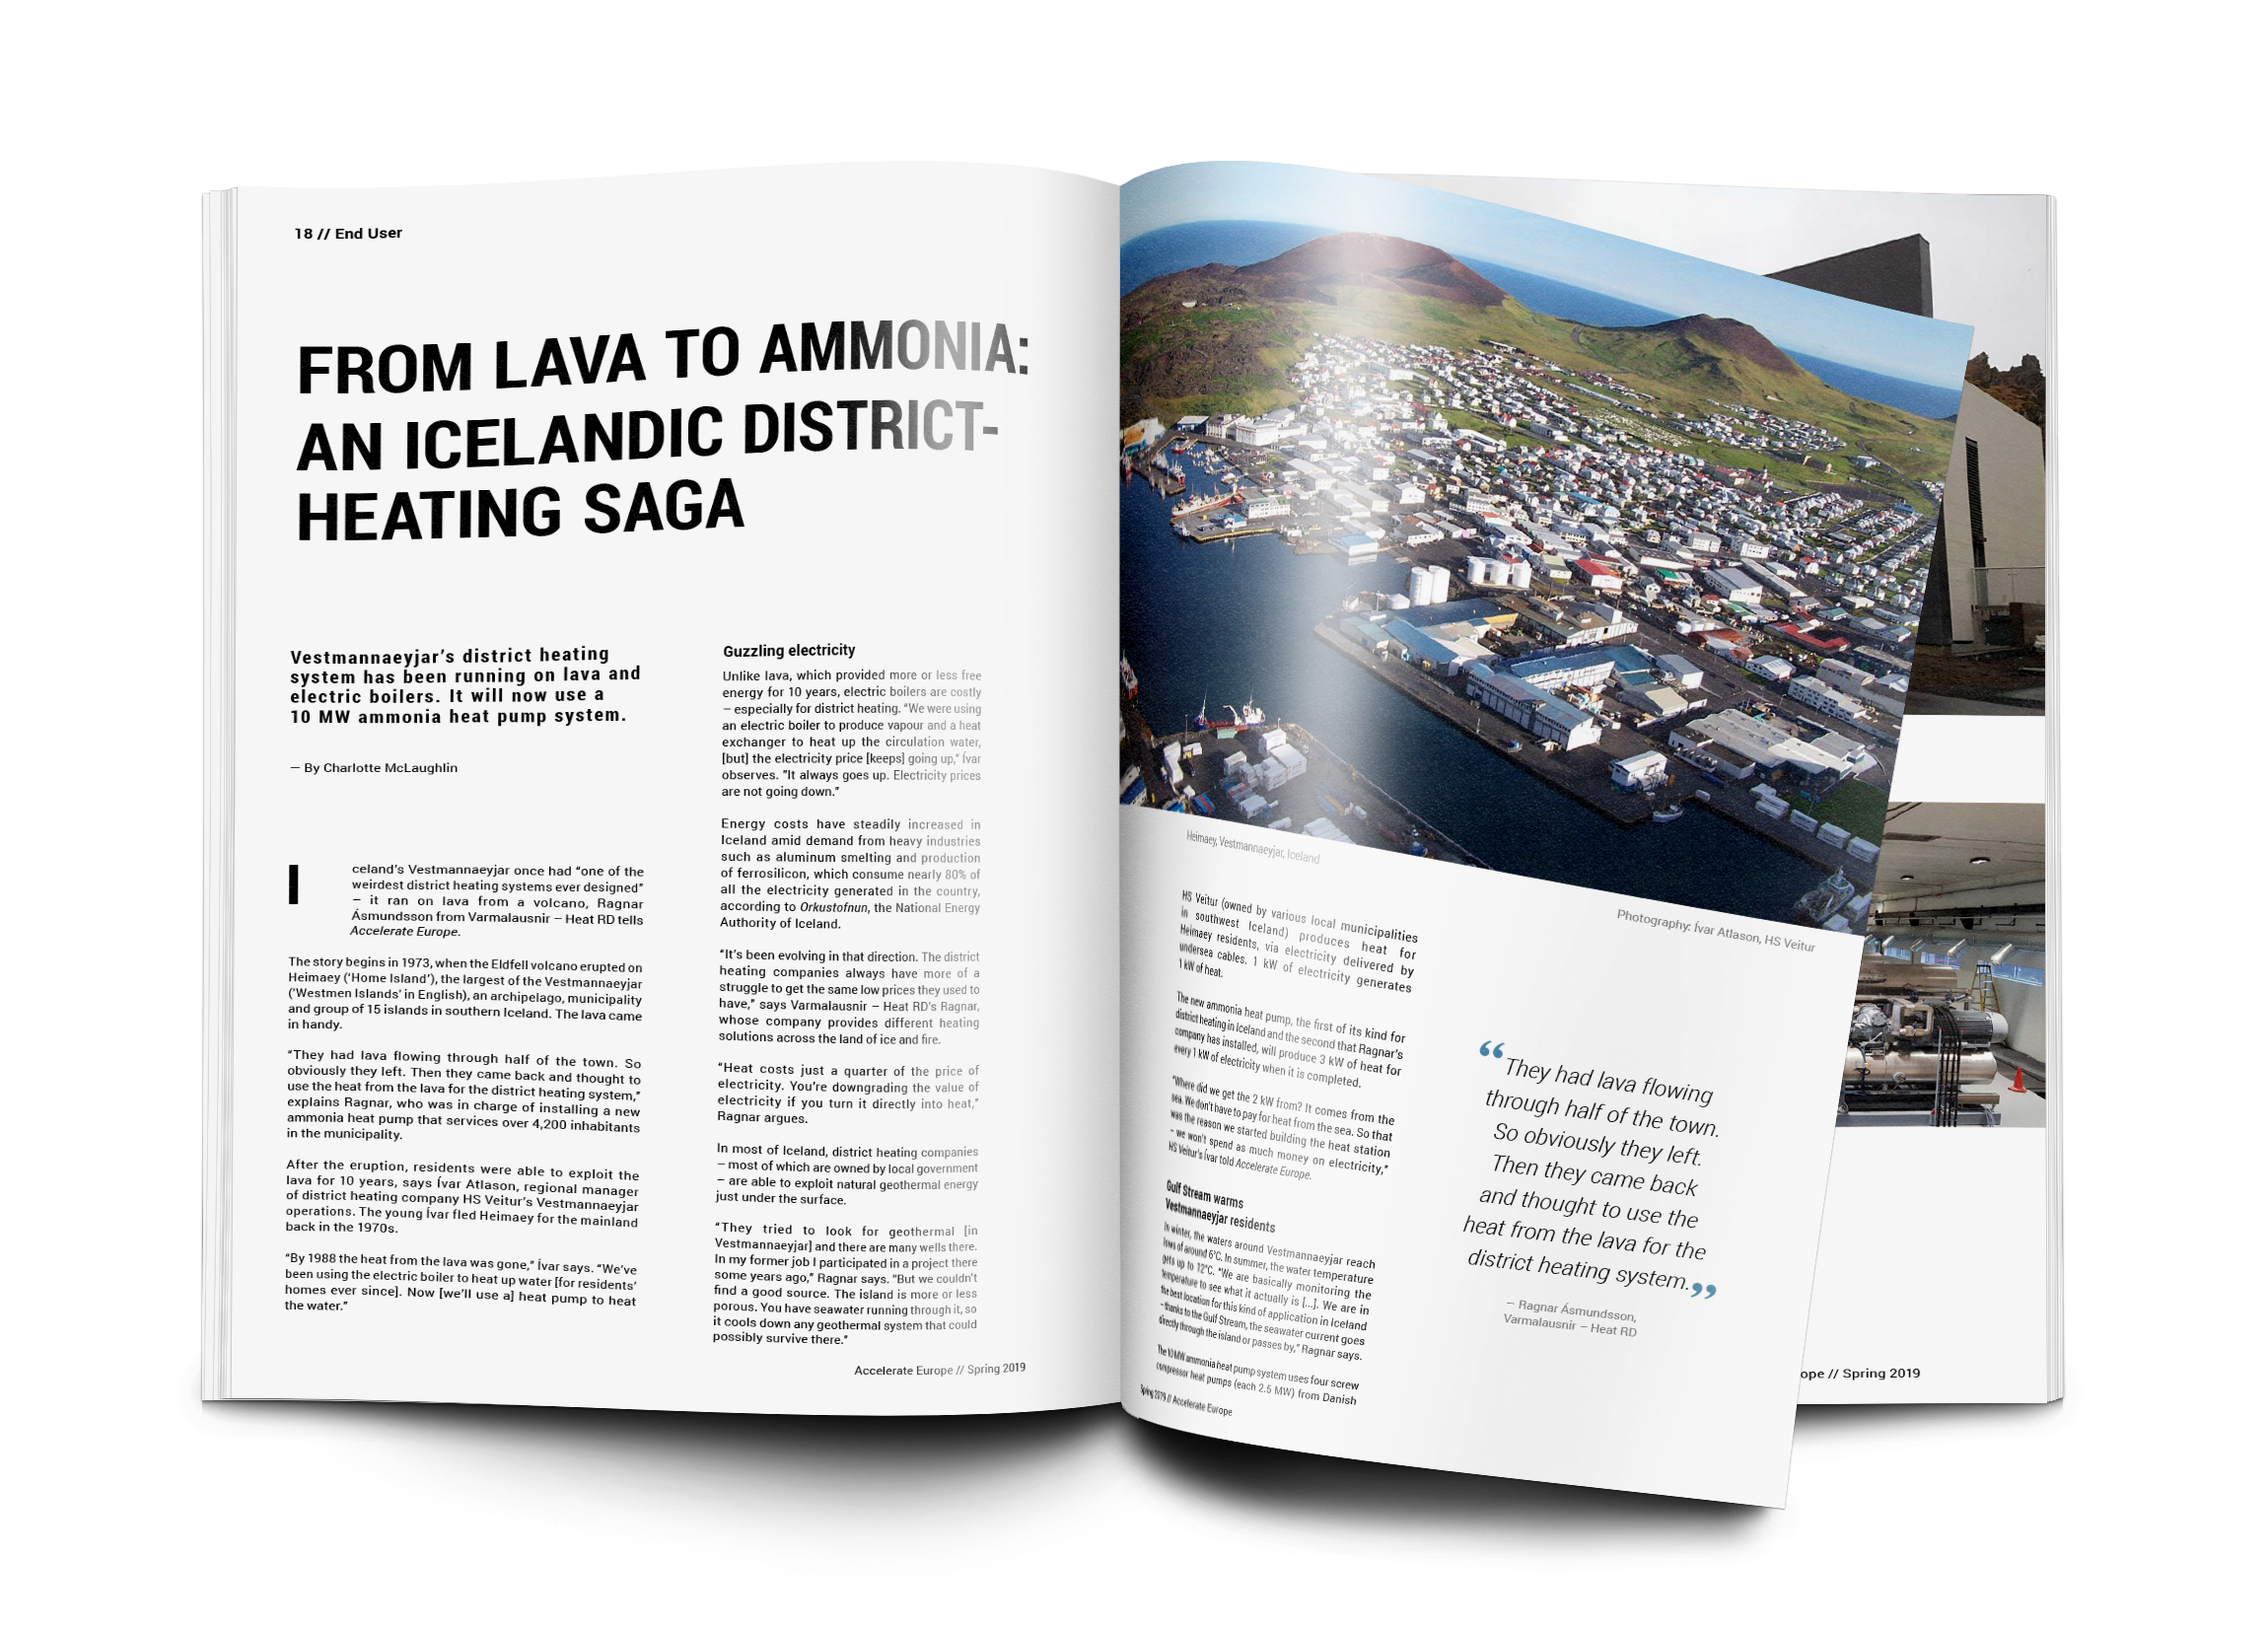 From lava to ammonia: An Icelandic district-heating saga